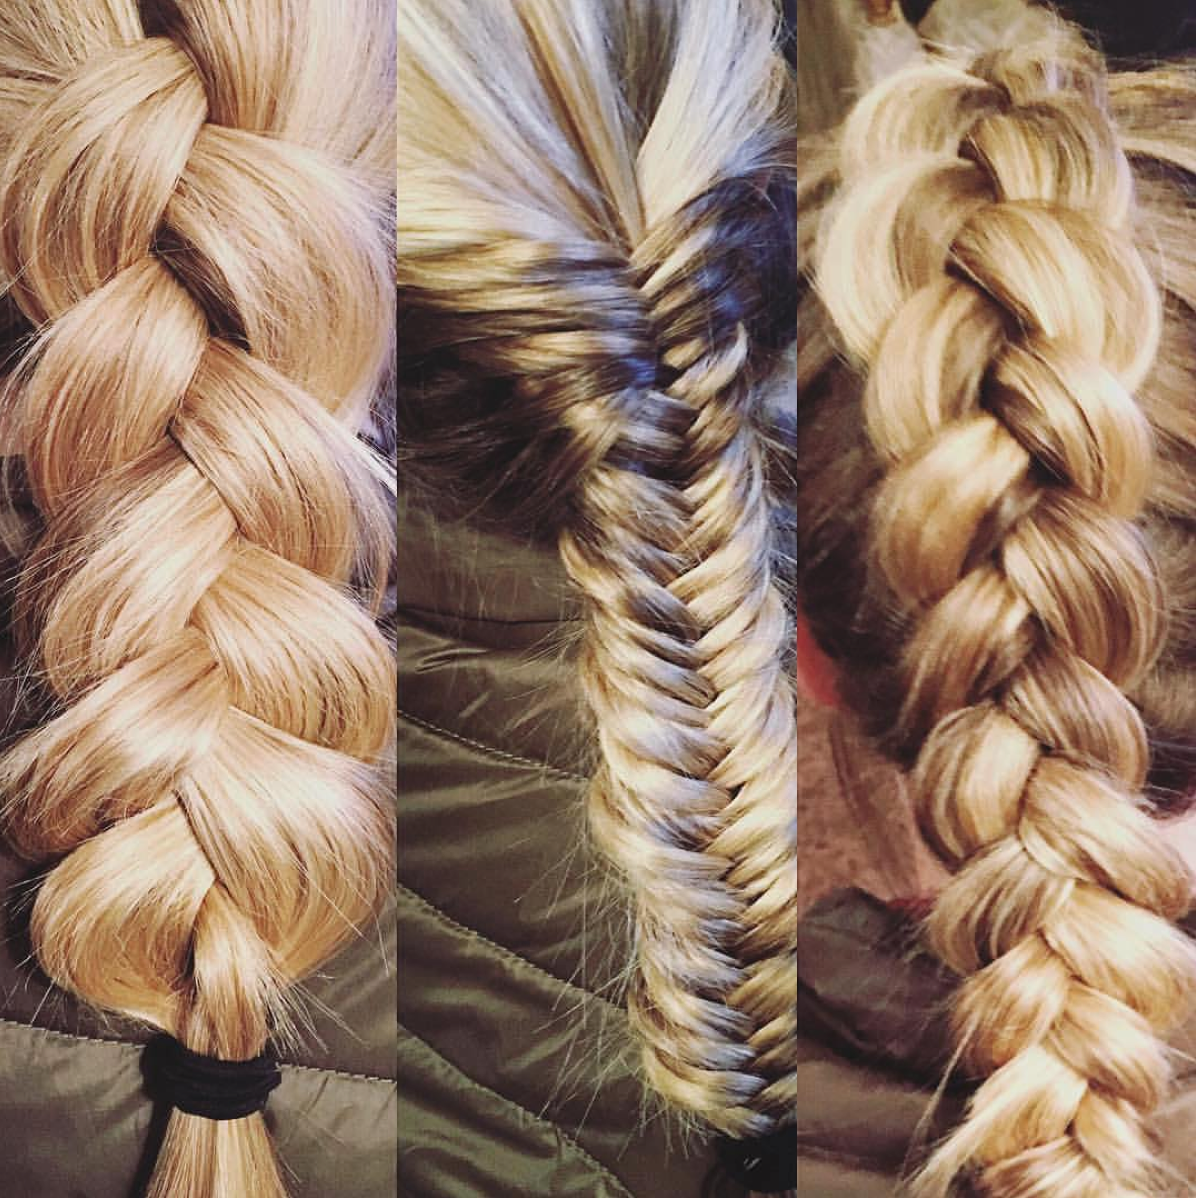 Braids at Oliver Finley Academy of Cosmetology. Photo